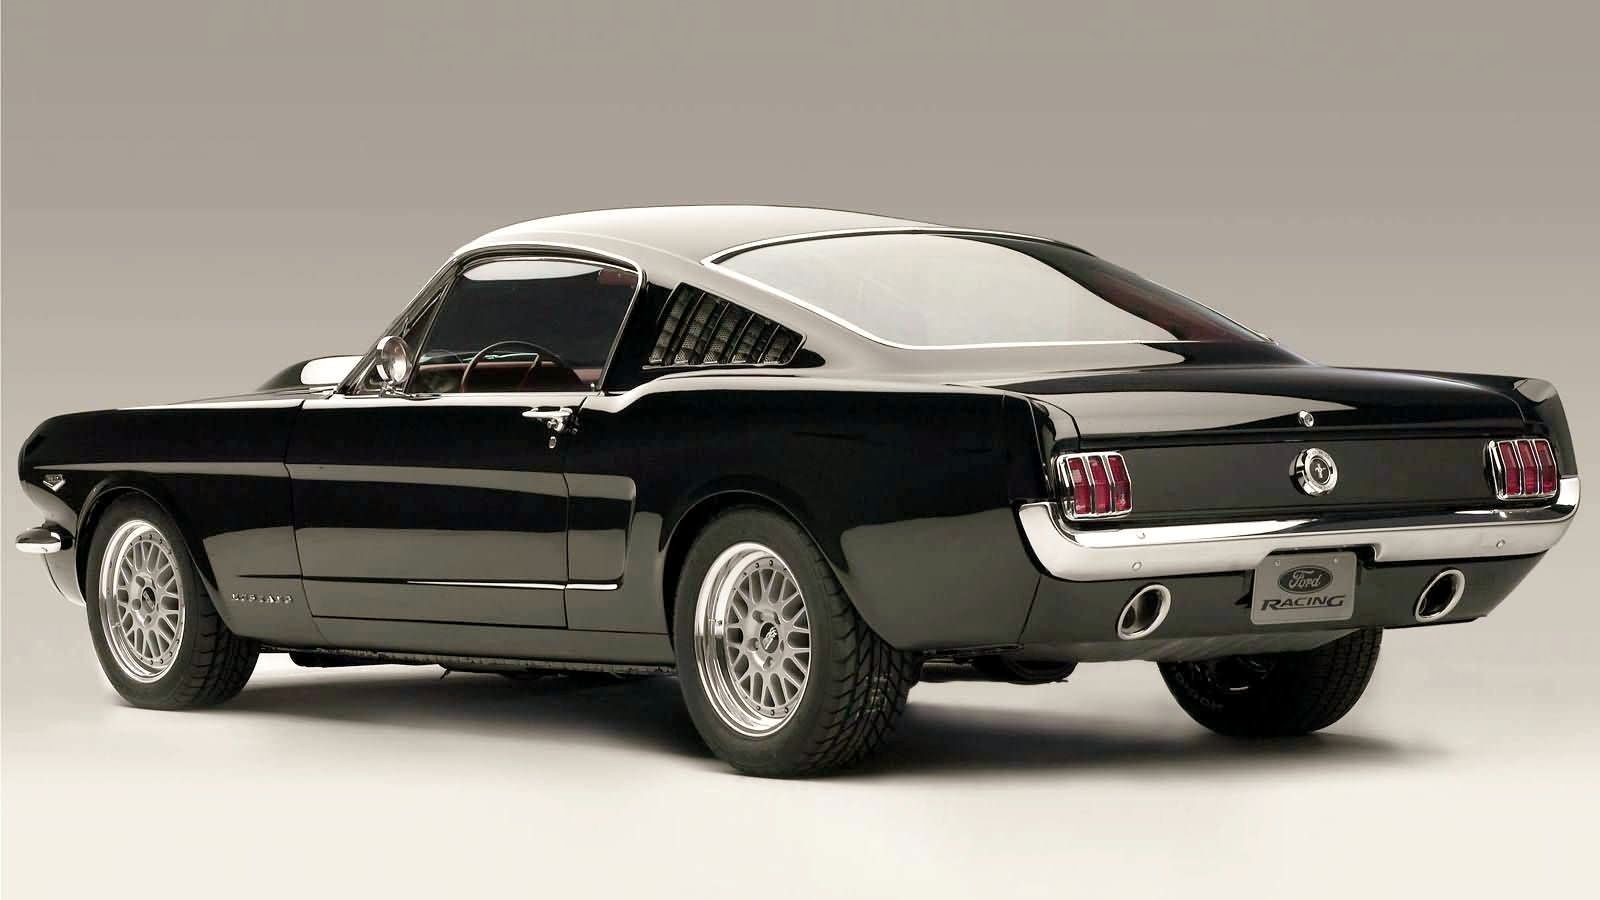 All Car Wallpapers Free Download 1965 Ford Mustang Fastback With